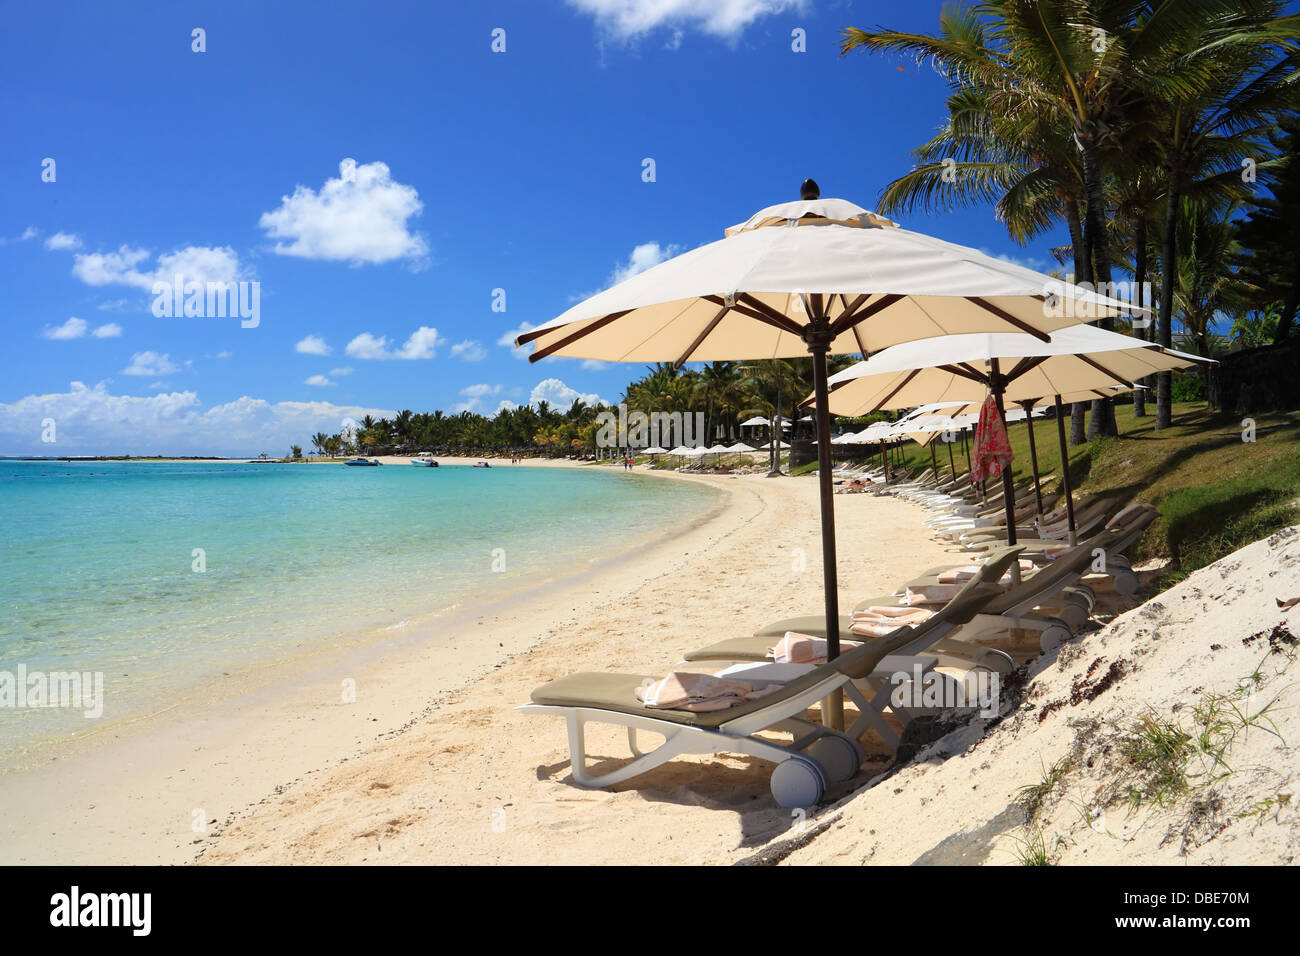 Tropical beach in Mauritius island - Stock Image